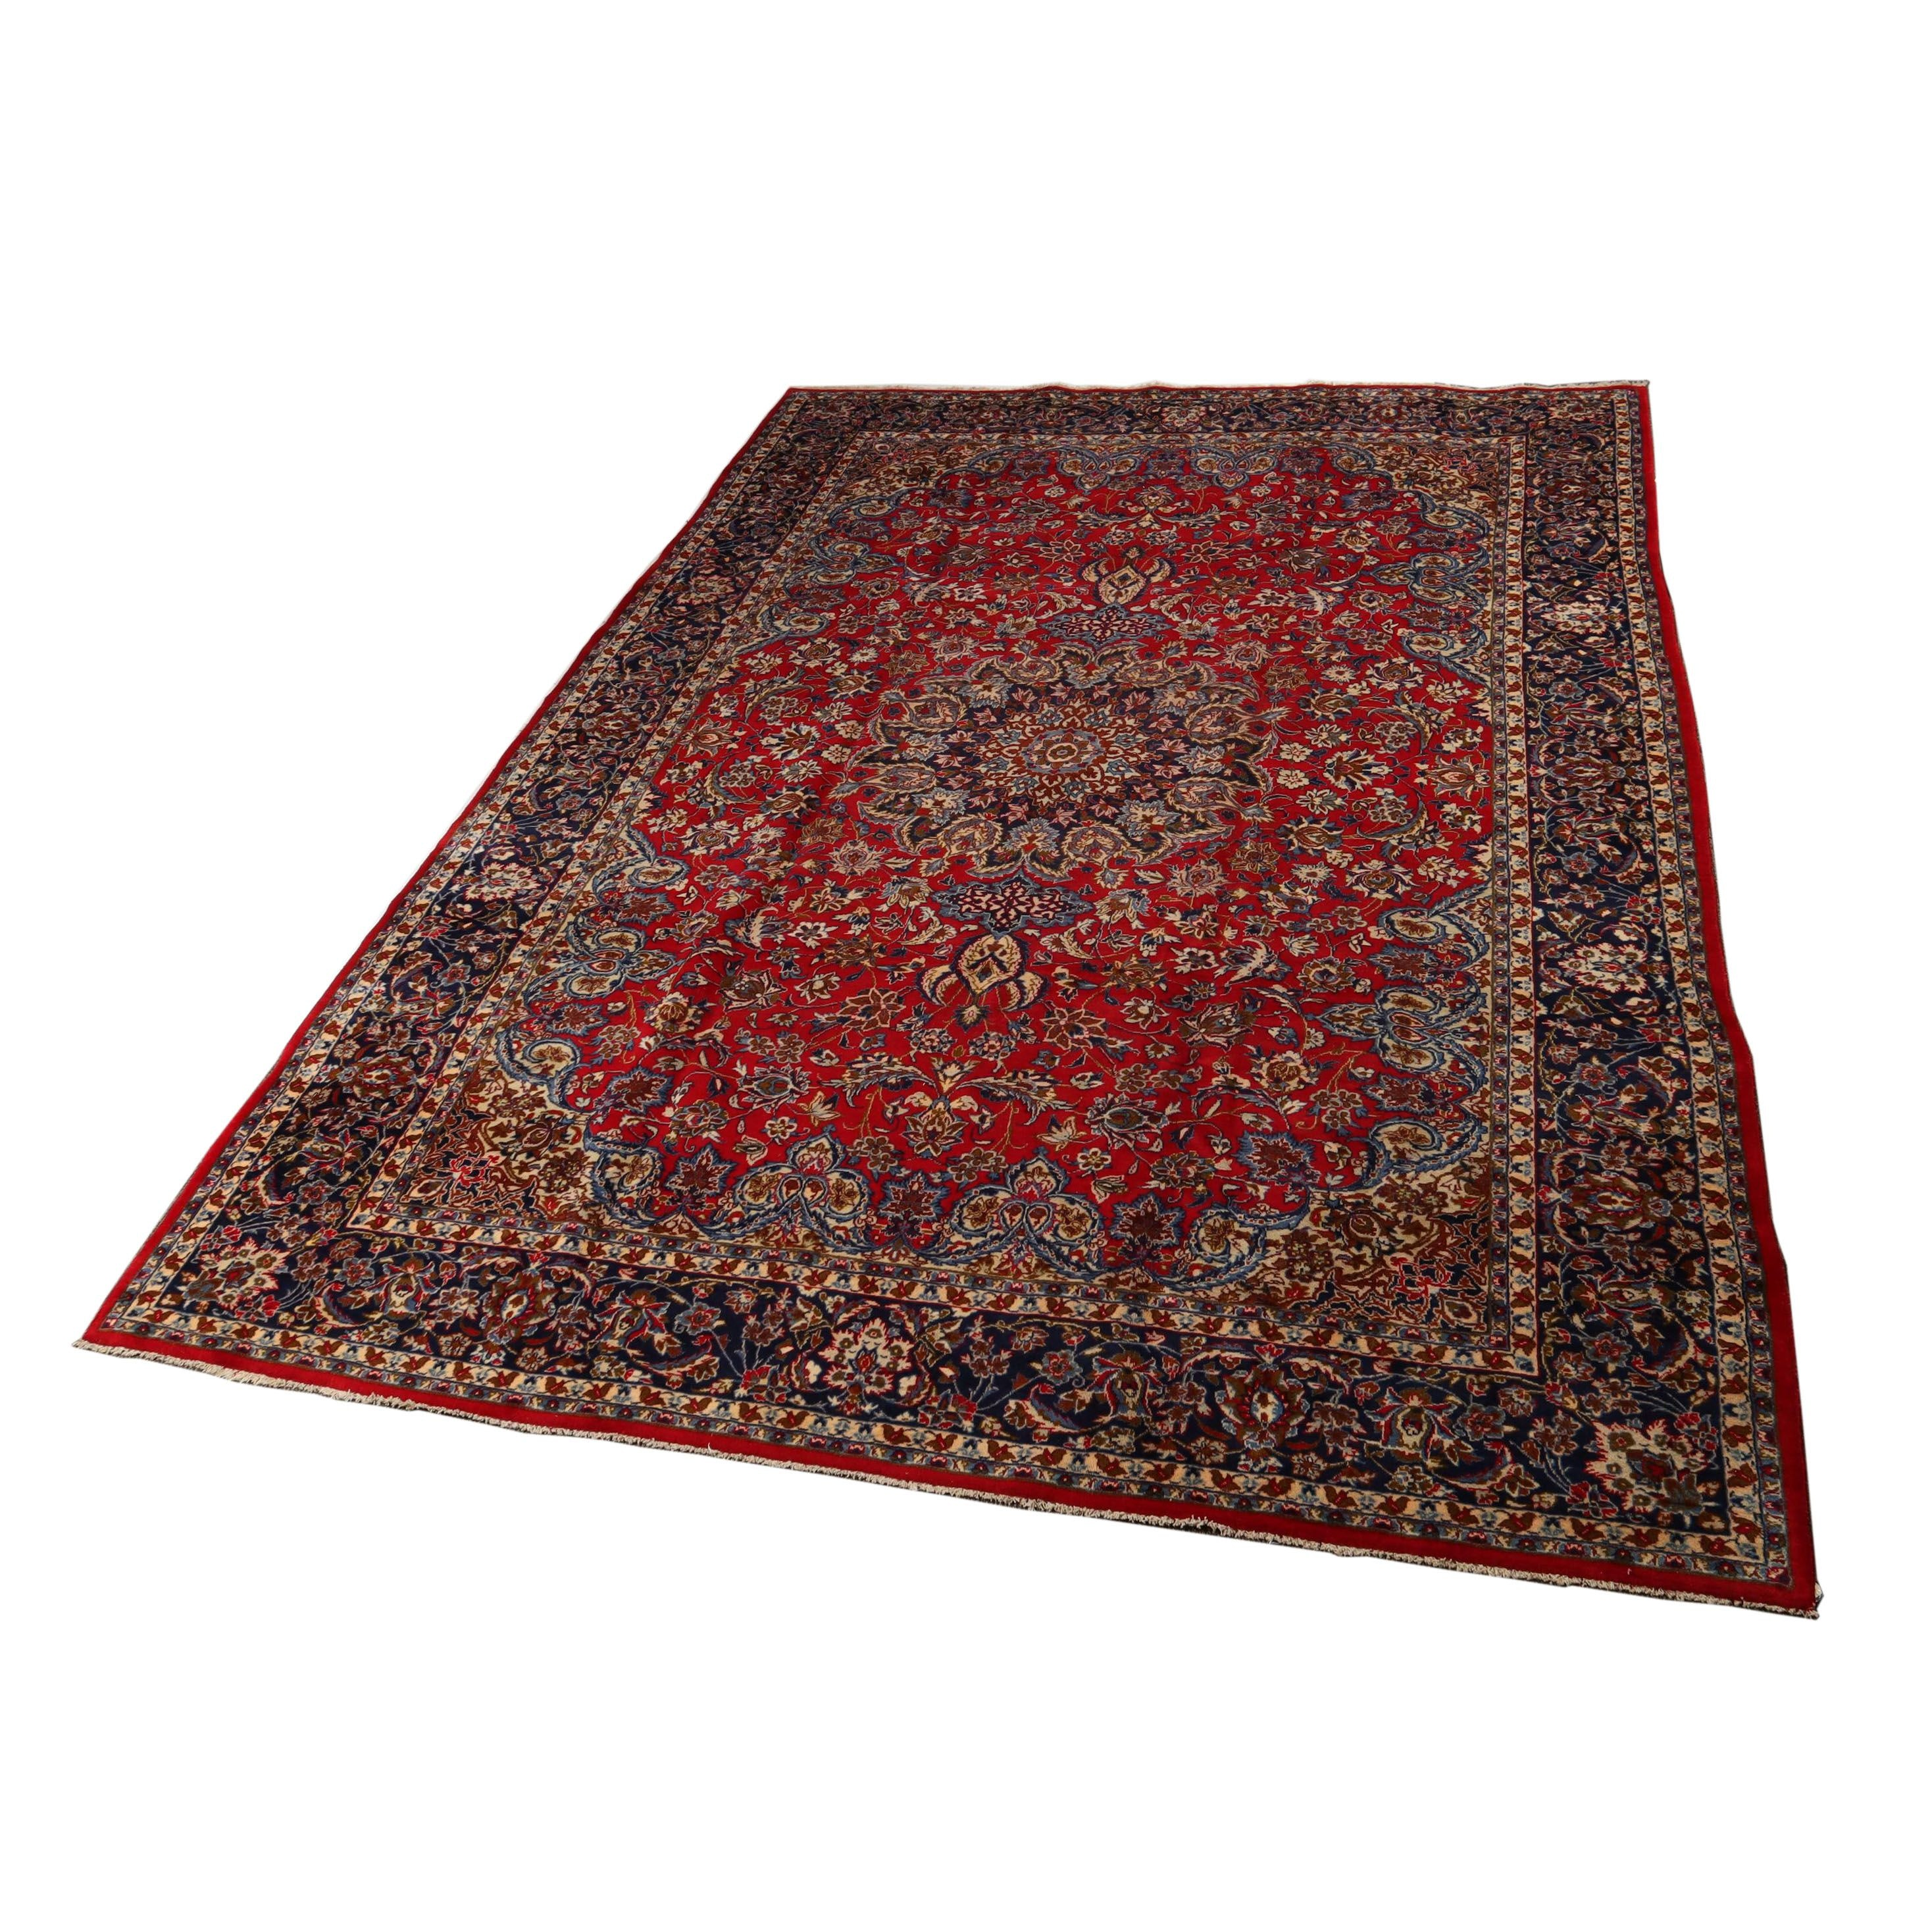 Hand-Knotted Persain Nain Wool Room Sized Rug